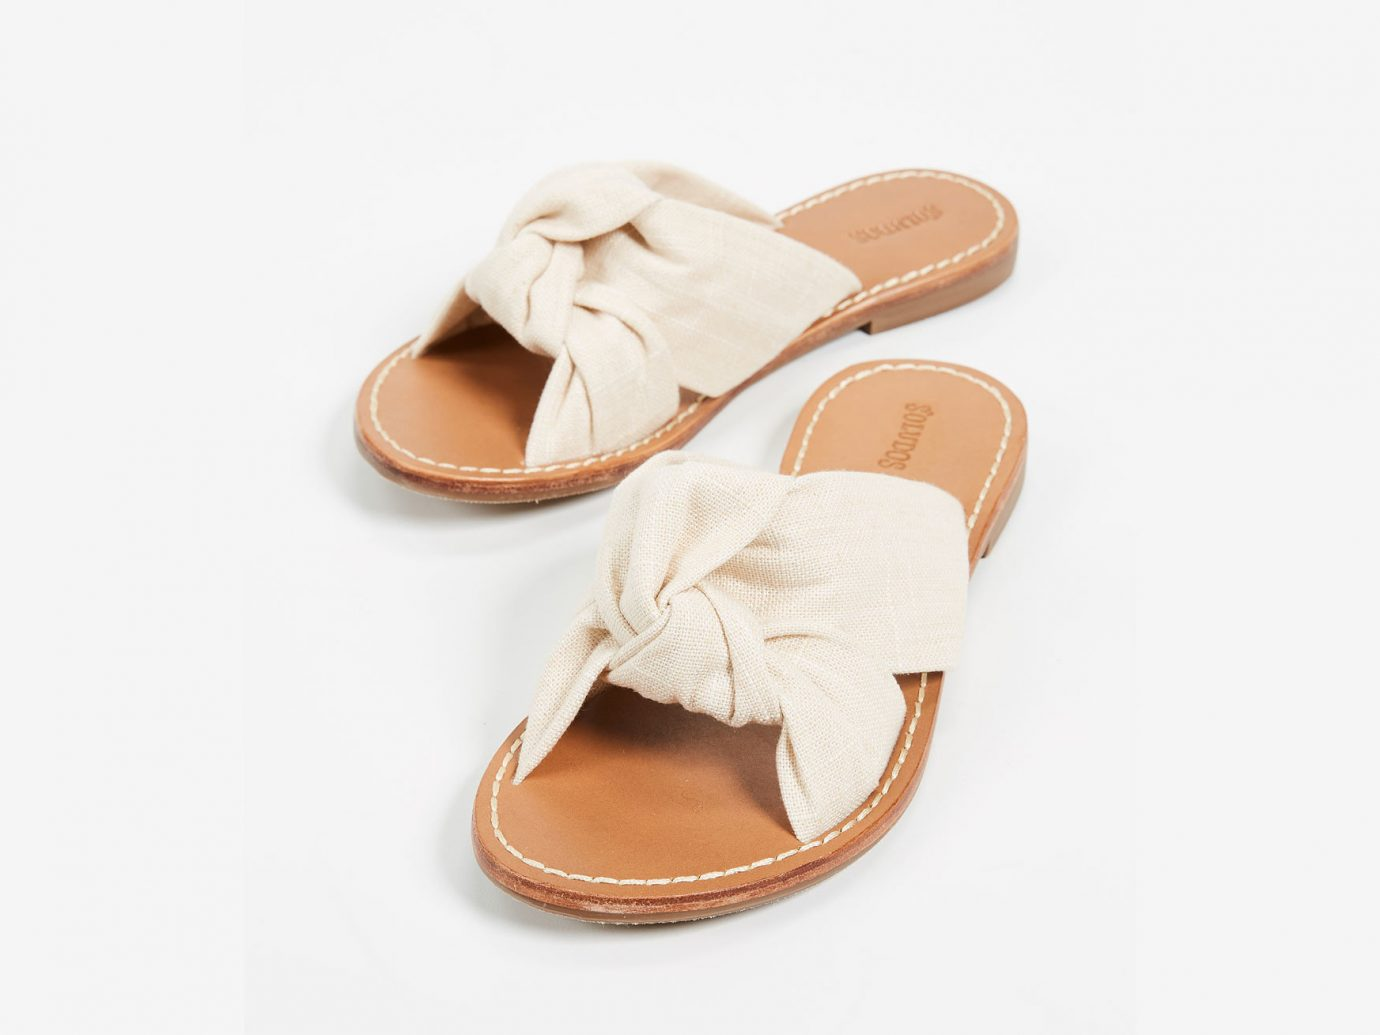 Morocco Packing Tips Style + Design Travel Shop footwear sandal shoe flip flops beige product peach outdoor shoe product design